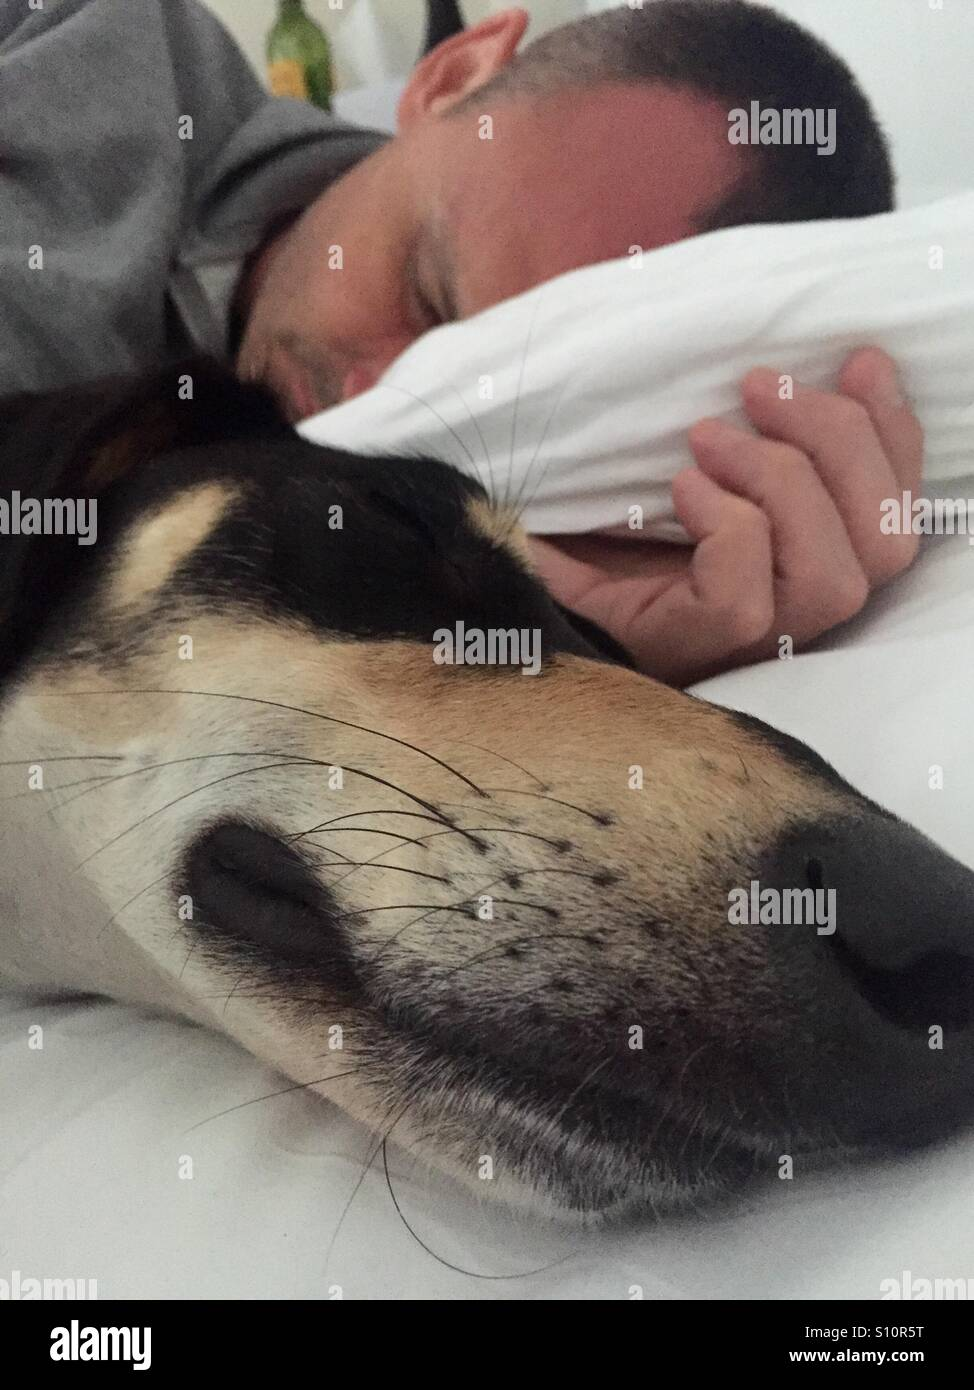 Sweet dreams: Saluki dog and man asleep - Stock Image